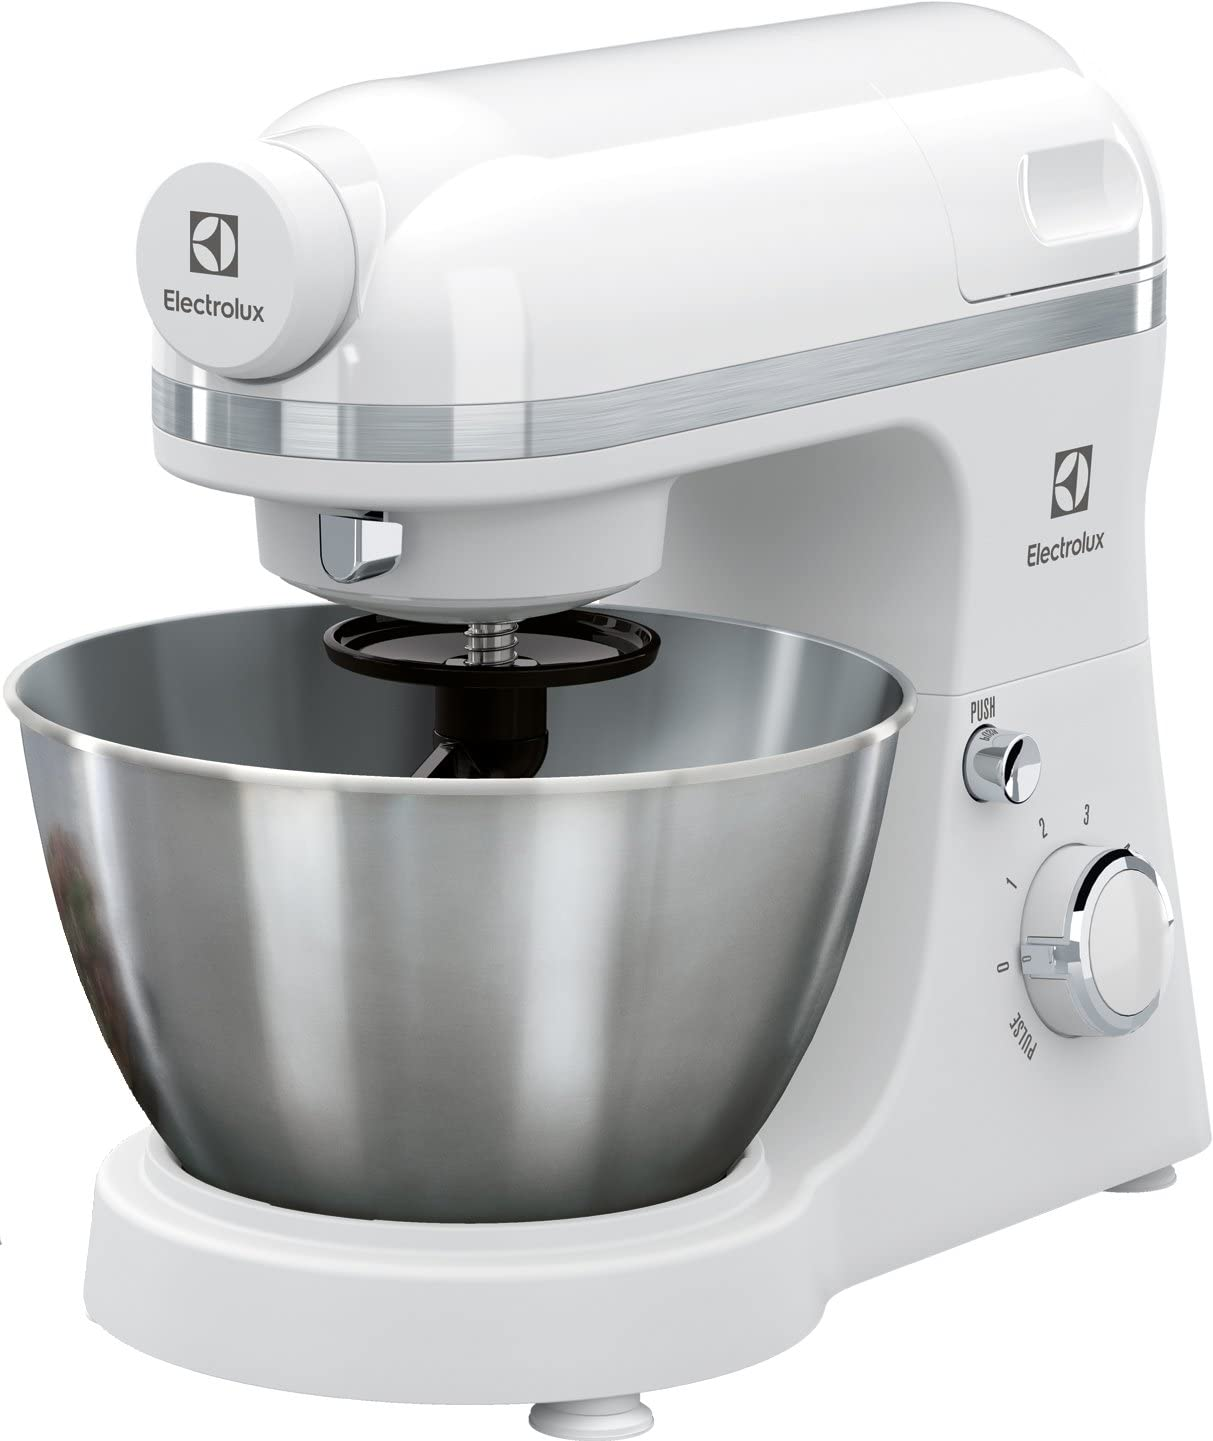 Electrolux ekm3010 Kitchen Machine, 800 W, color blanco: Amazon.es: Hogar